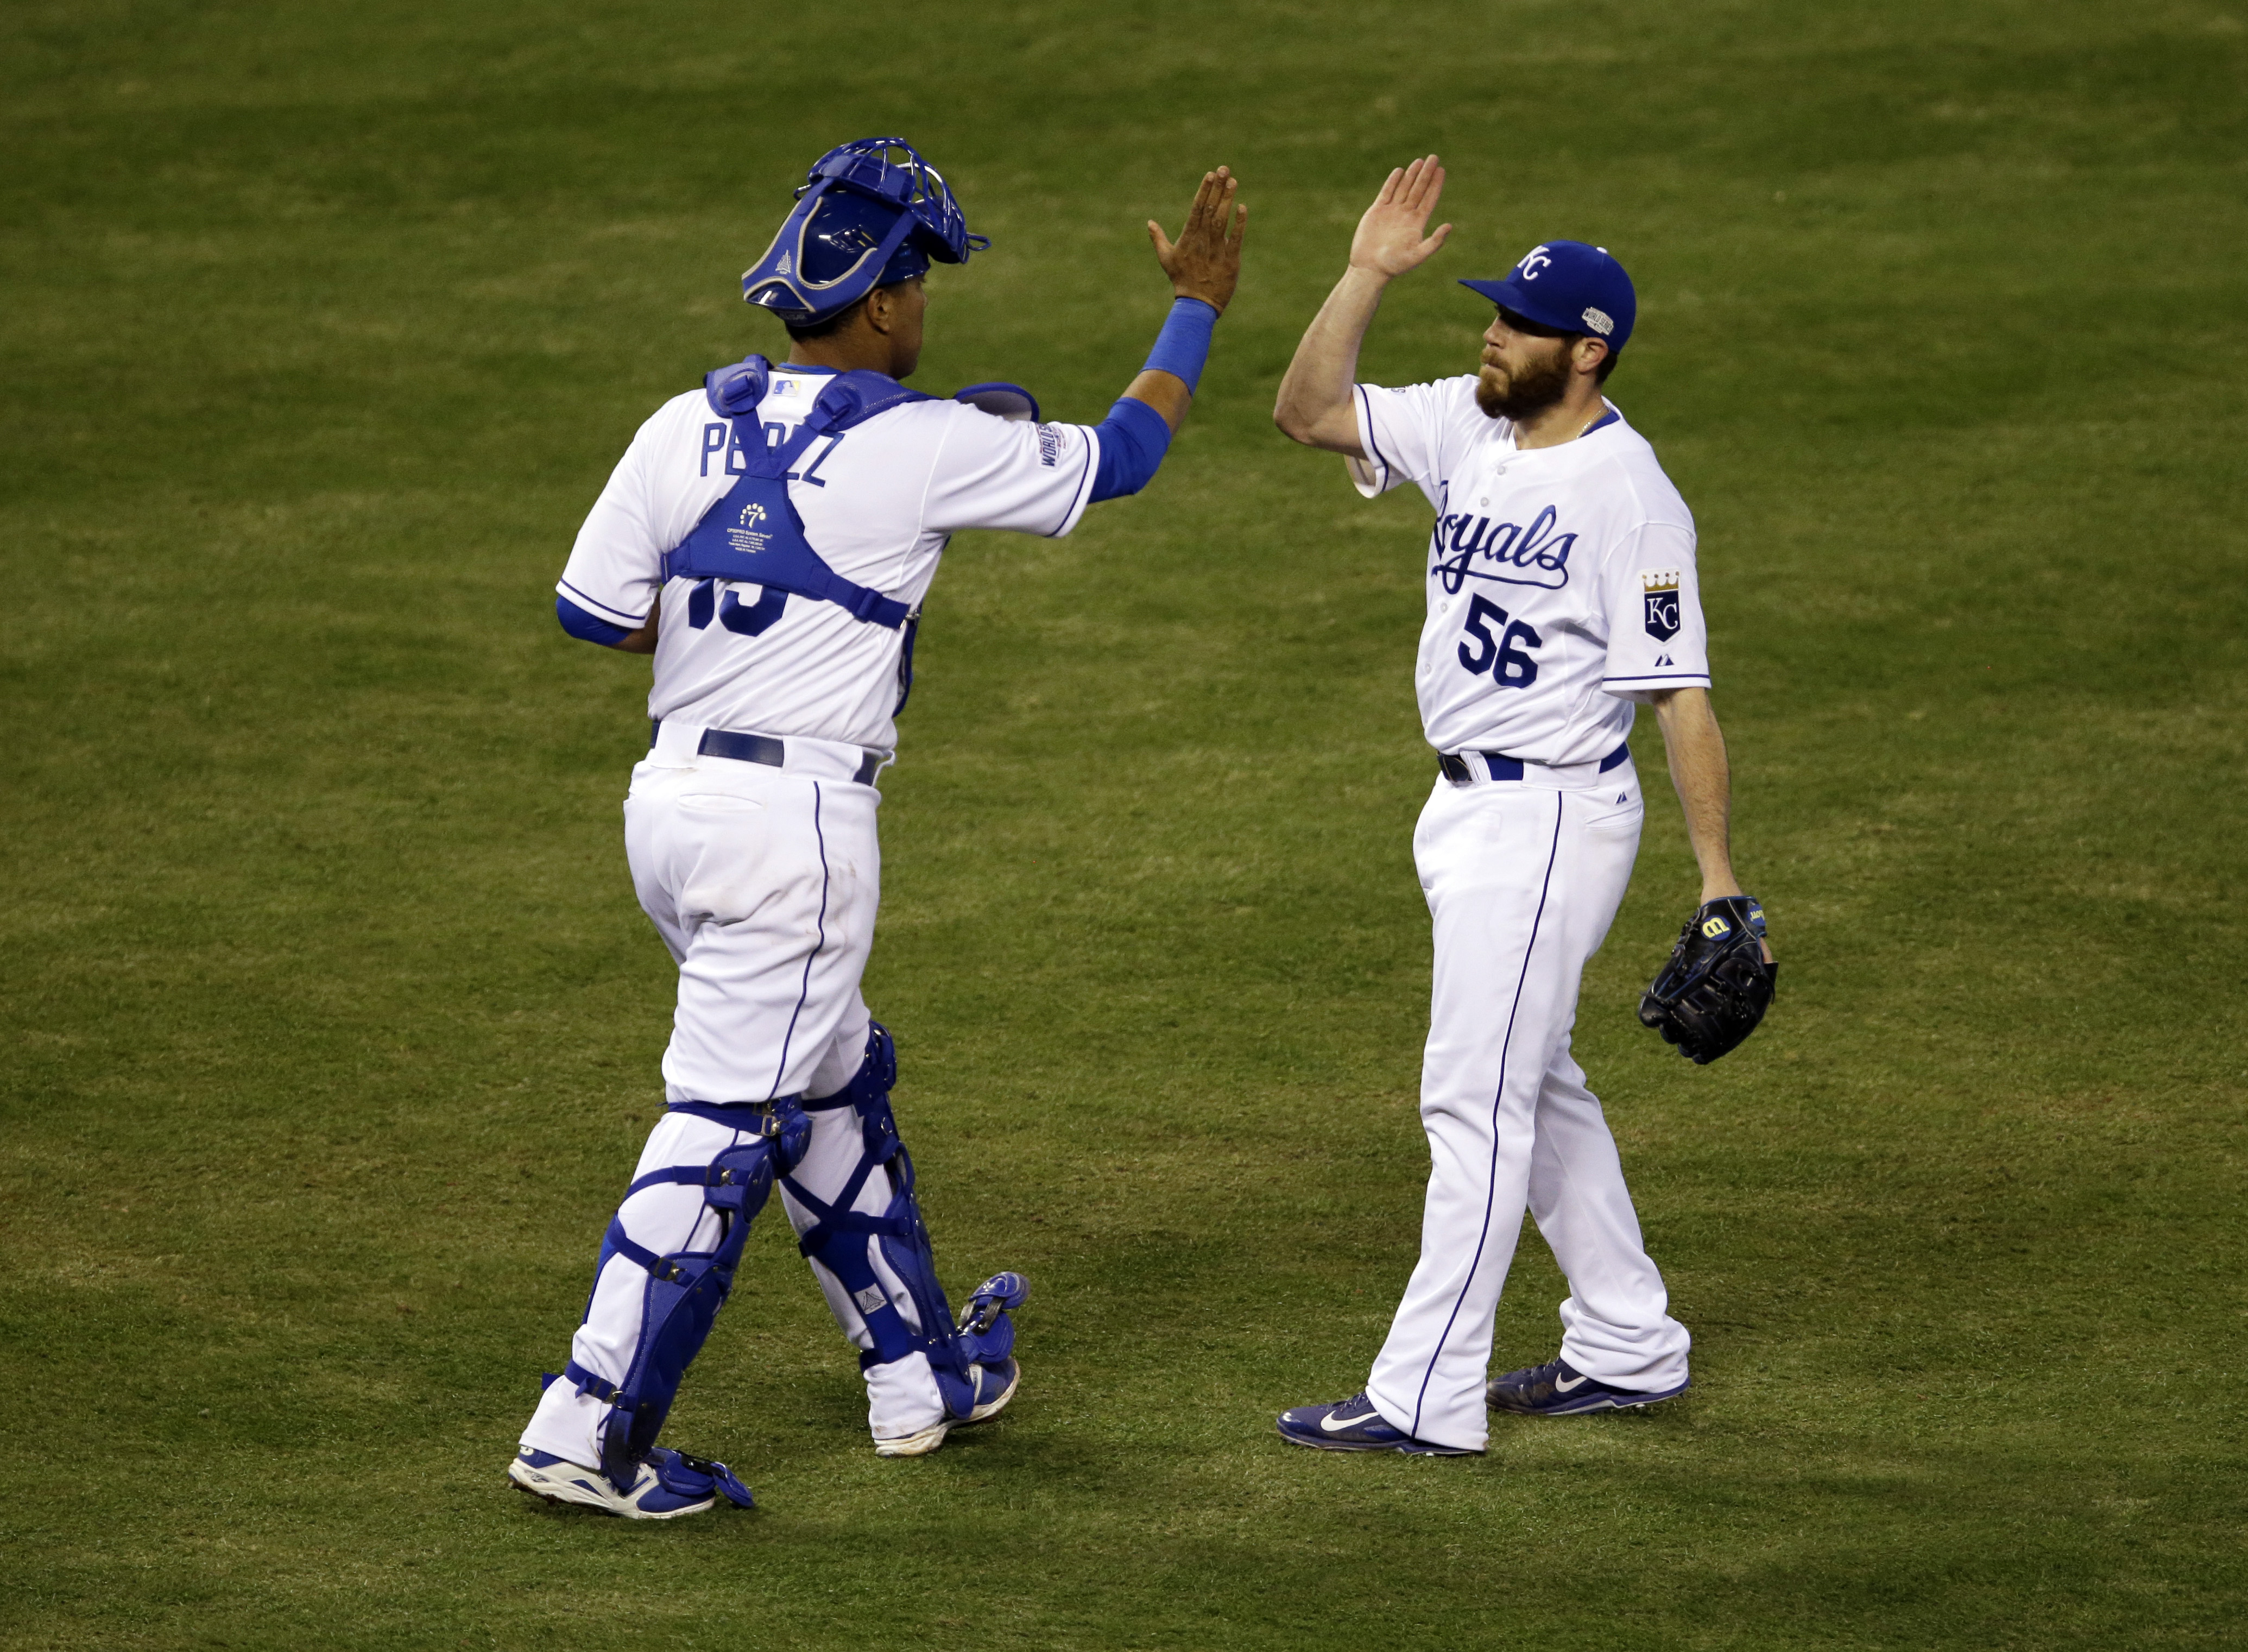 Kansas City Royals catcher Salvador Perez and Greg Holland celebrate after Game 2 of the World Series in Kansas City on Oct. 22, 2014